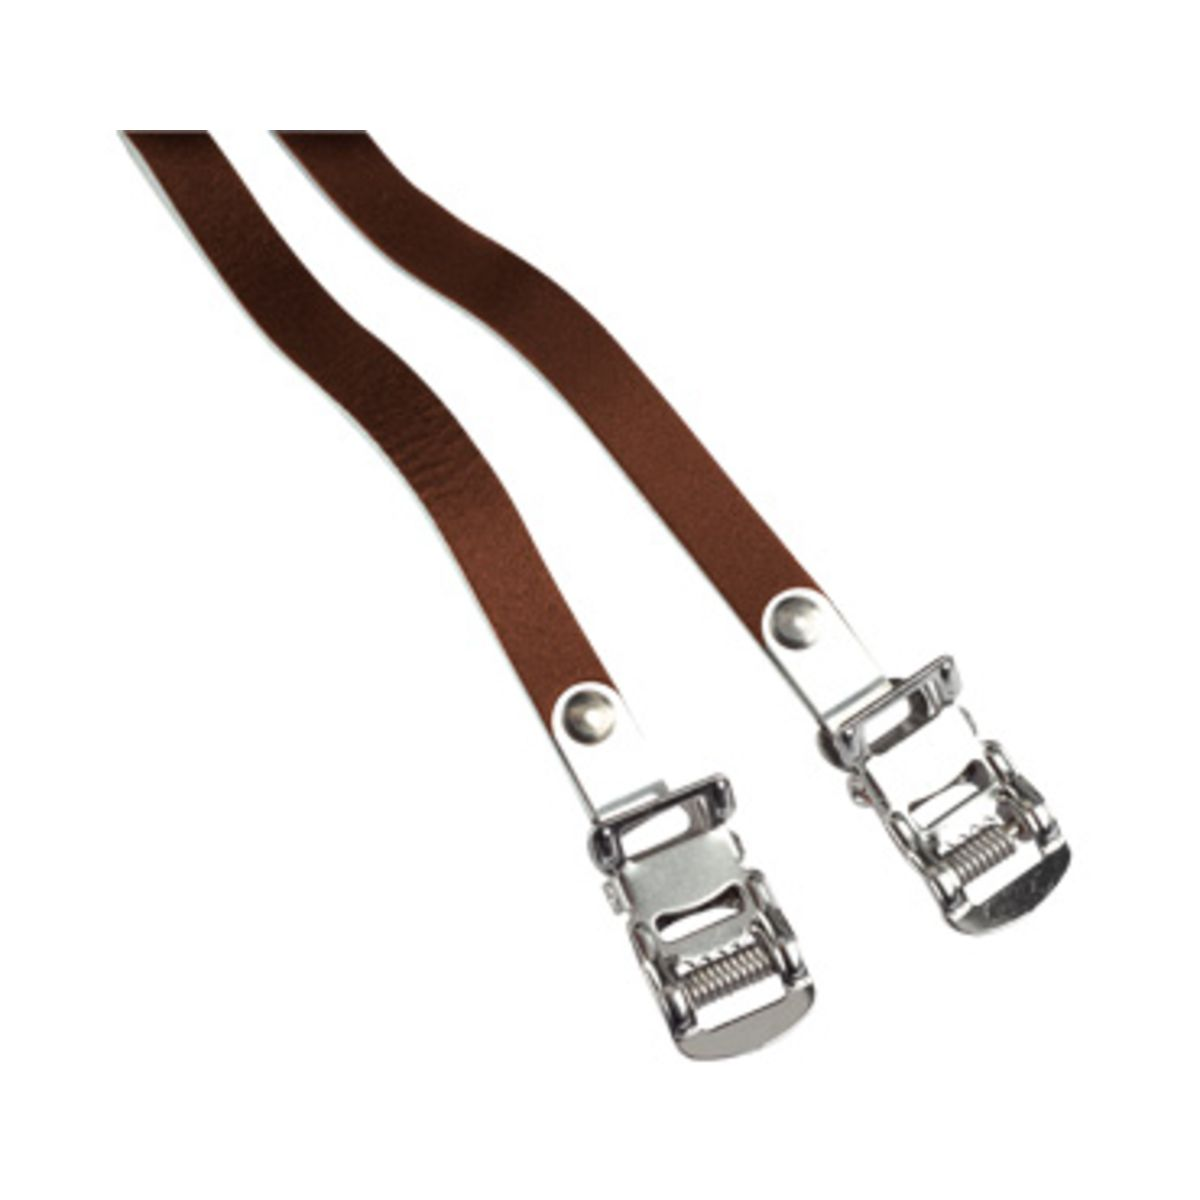 ROSE leather straps for toe clips | Toe clips